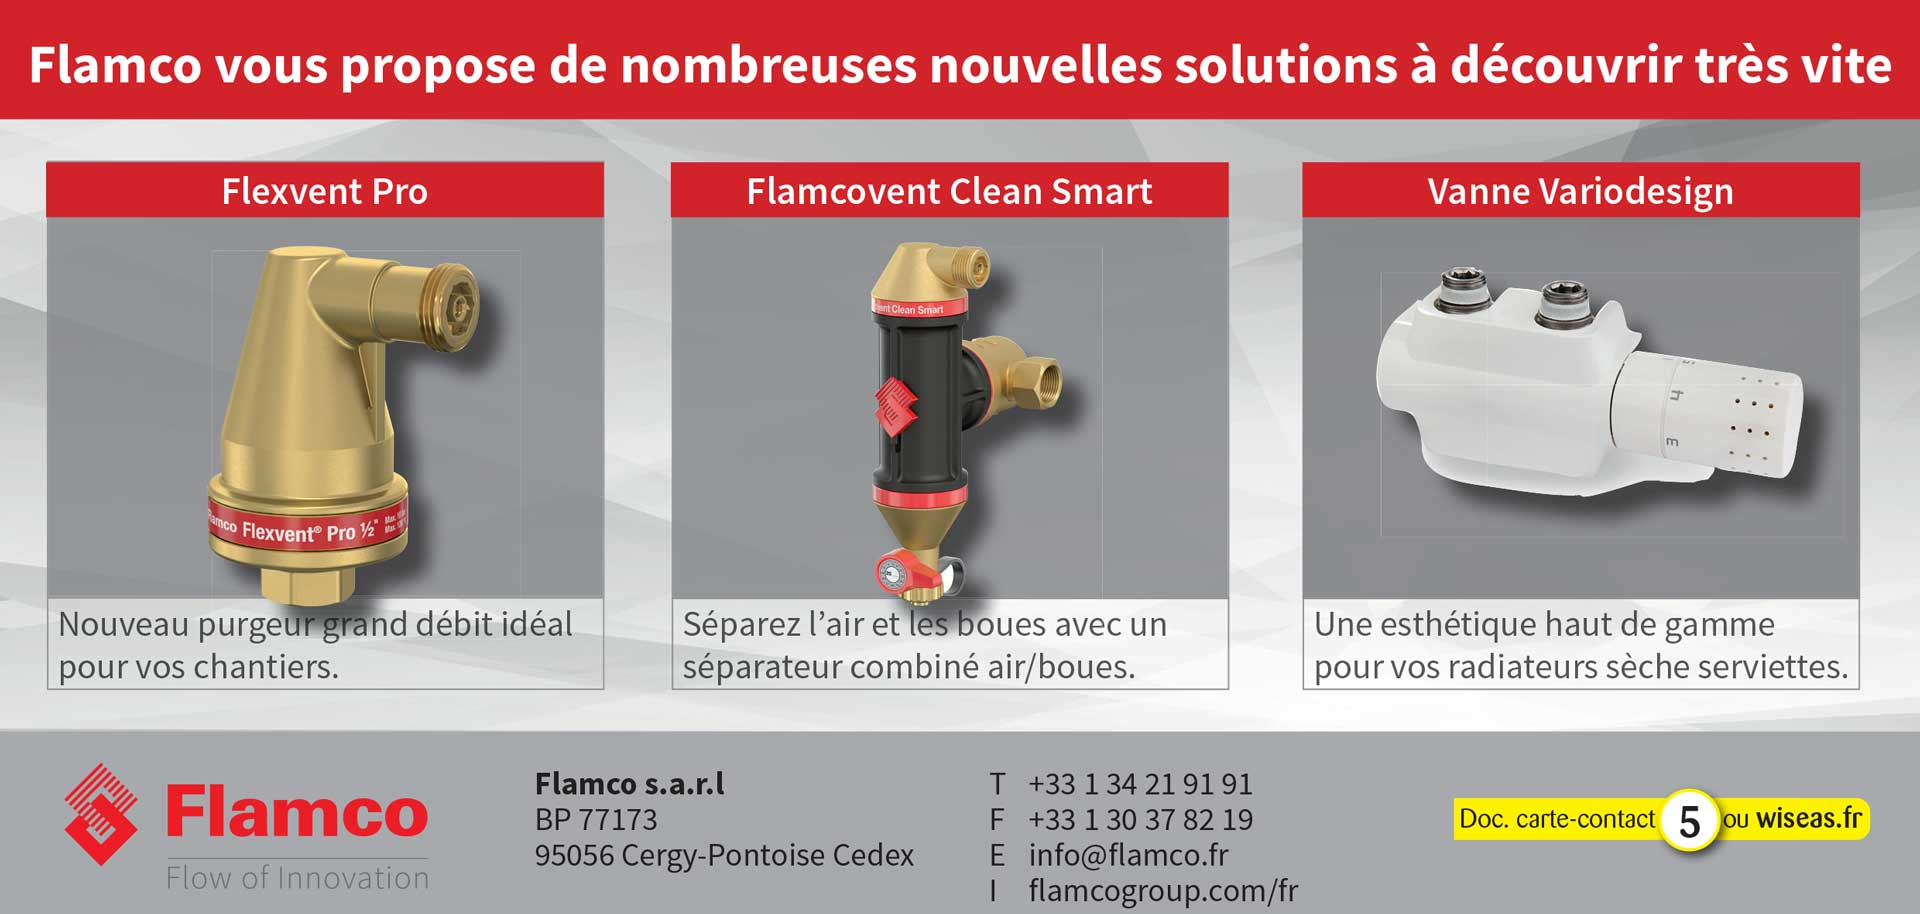 Flexvent Pro - Flamcovent Clean Smart - Variodesign